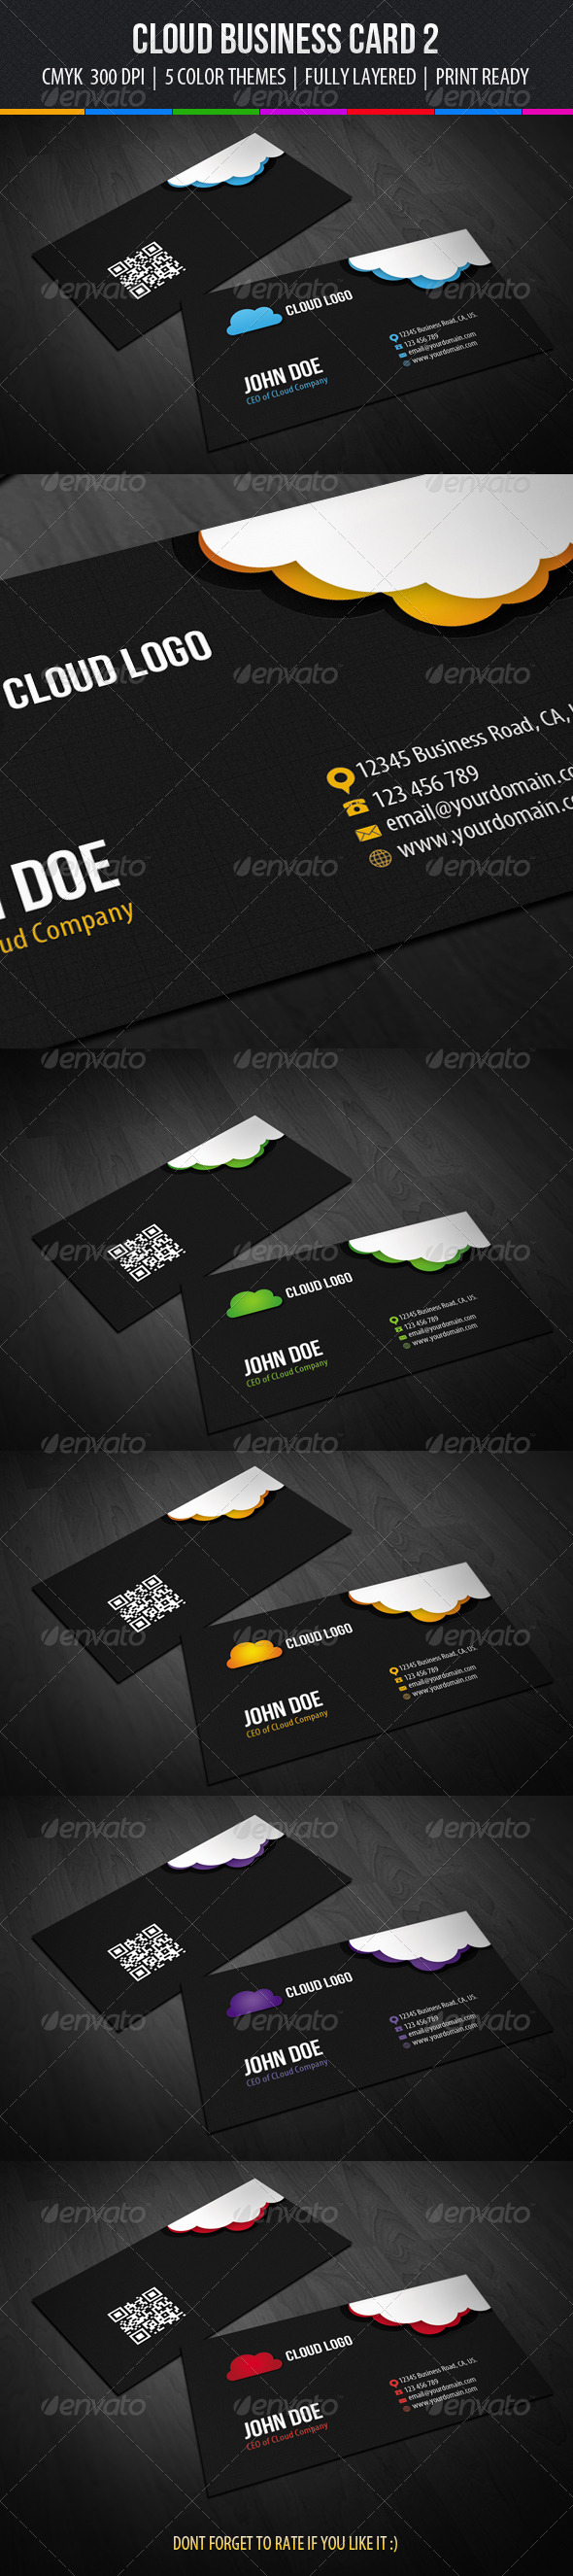 Cloud Business Card Design 2 - Industry Specific Business Cards